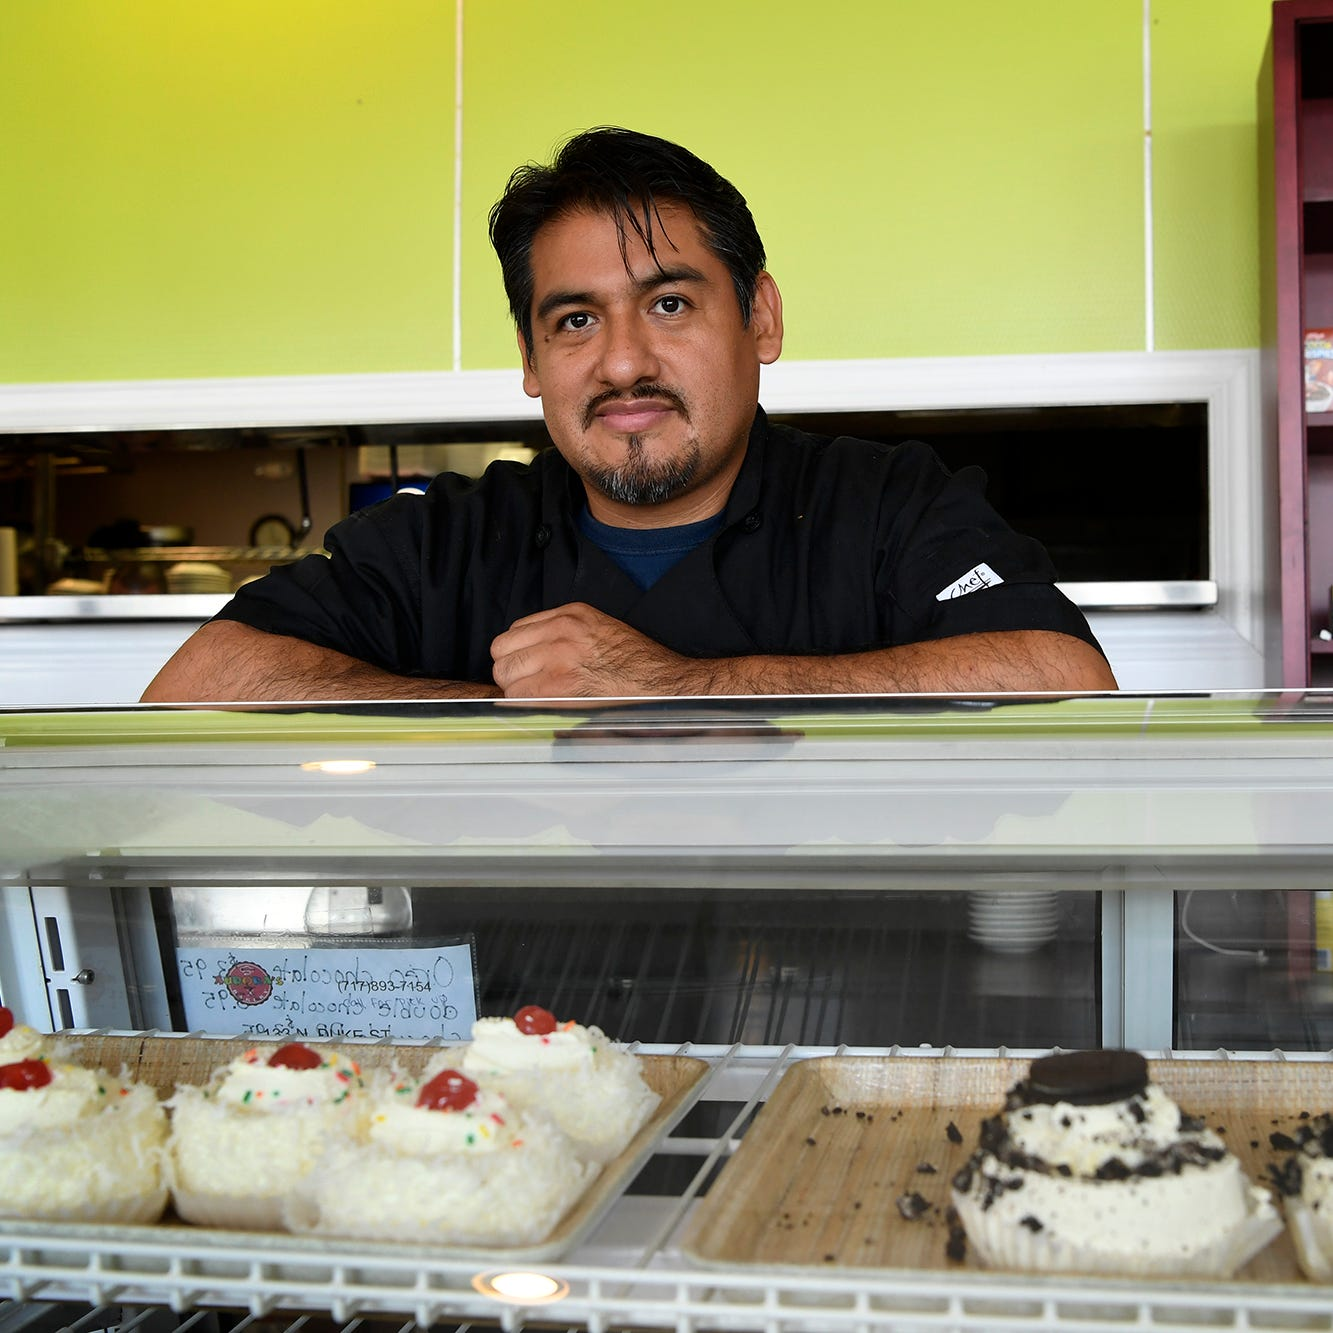 A promise made to his mother when leaving Mexico fulfilled, Anselmo Arrieta recently opened Aurora's Bakery at 133 N. Duke Street. Thursday, August 15, 2018.  John A. Pavoncello photo